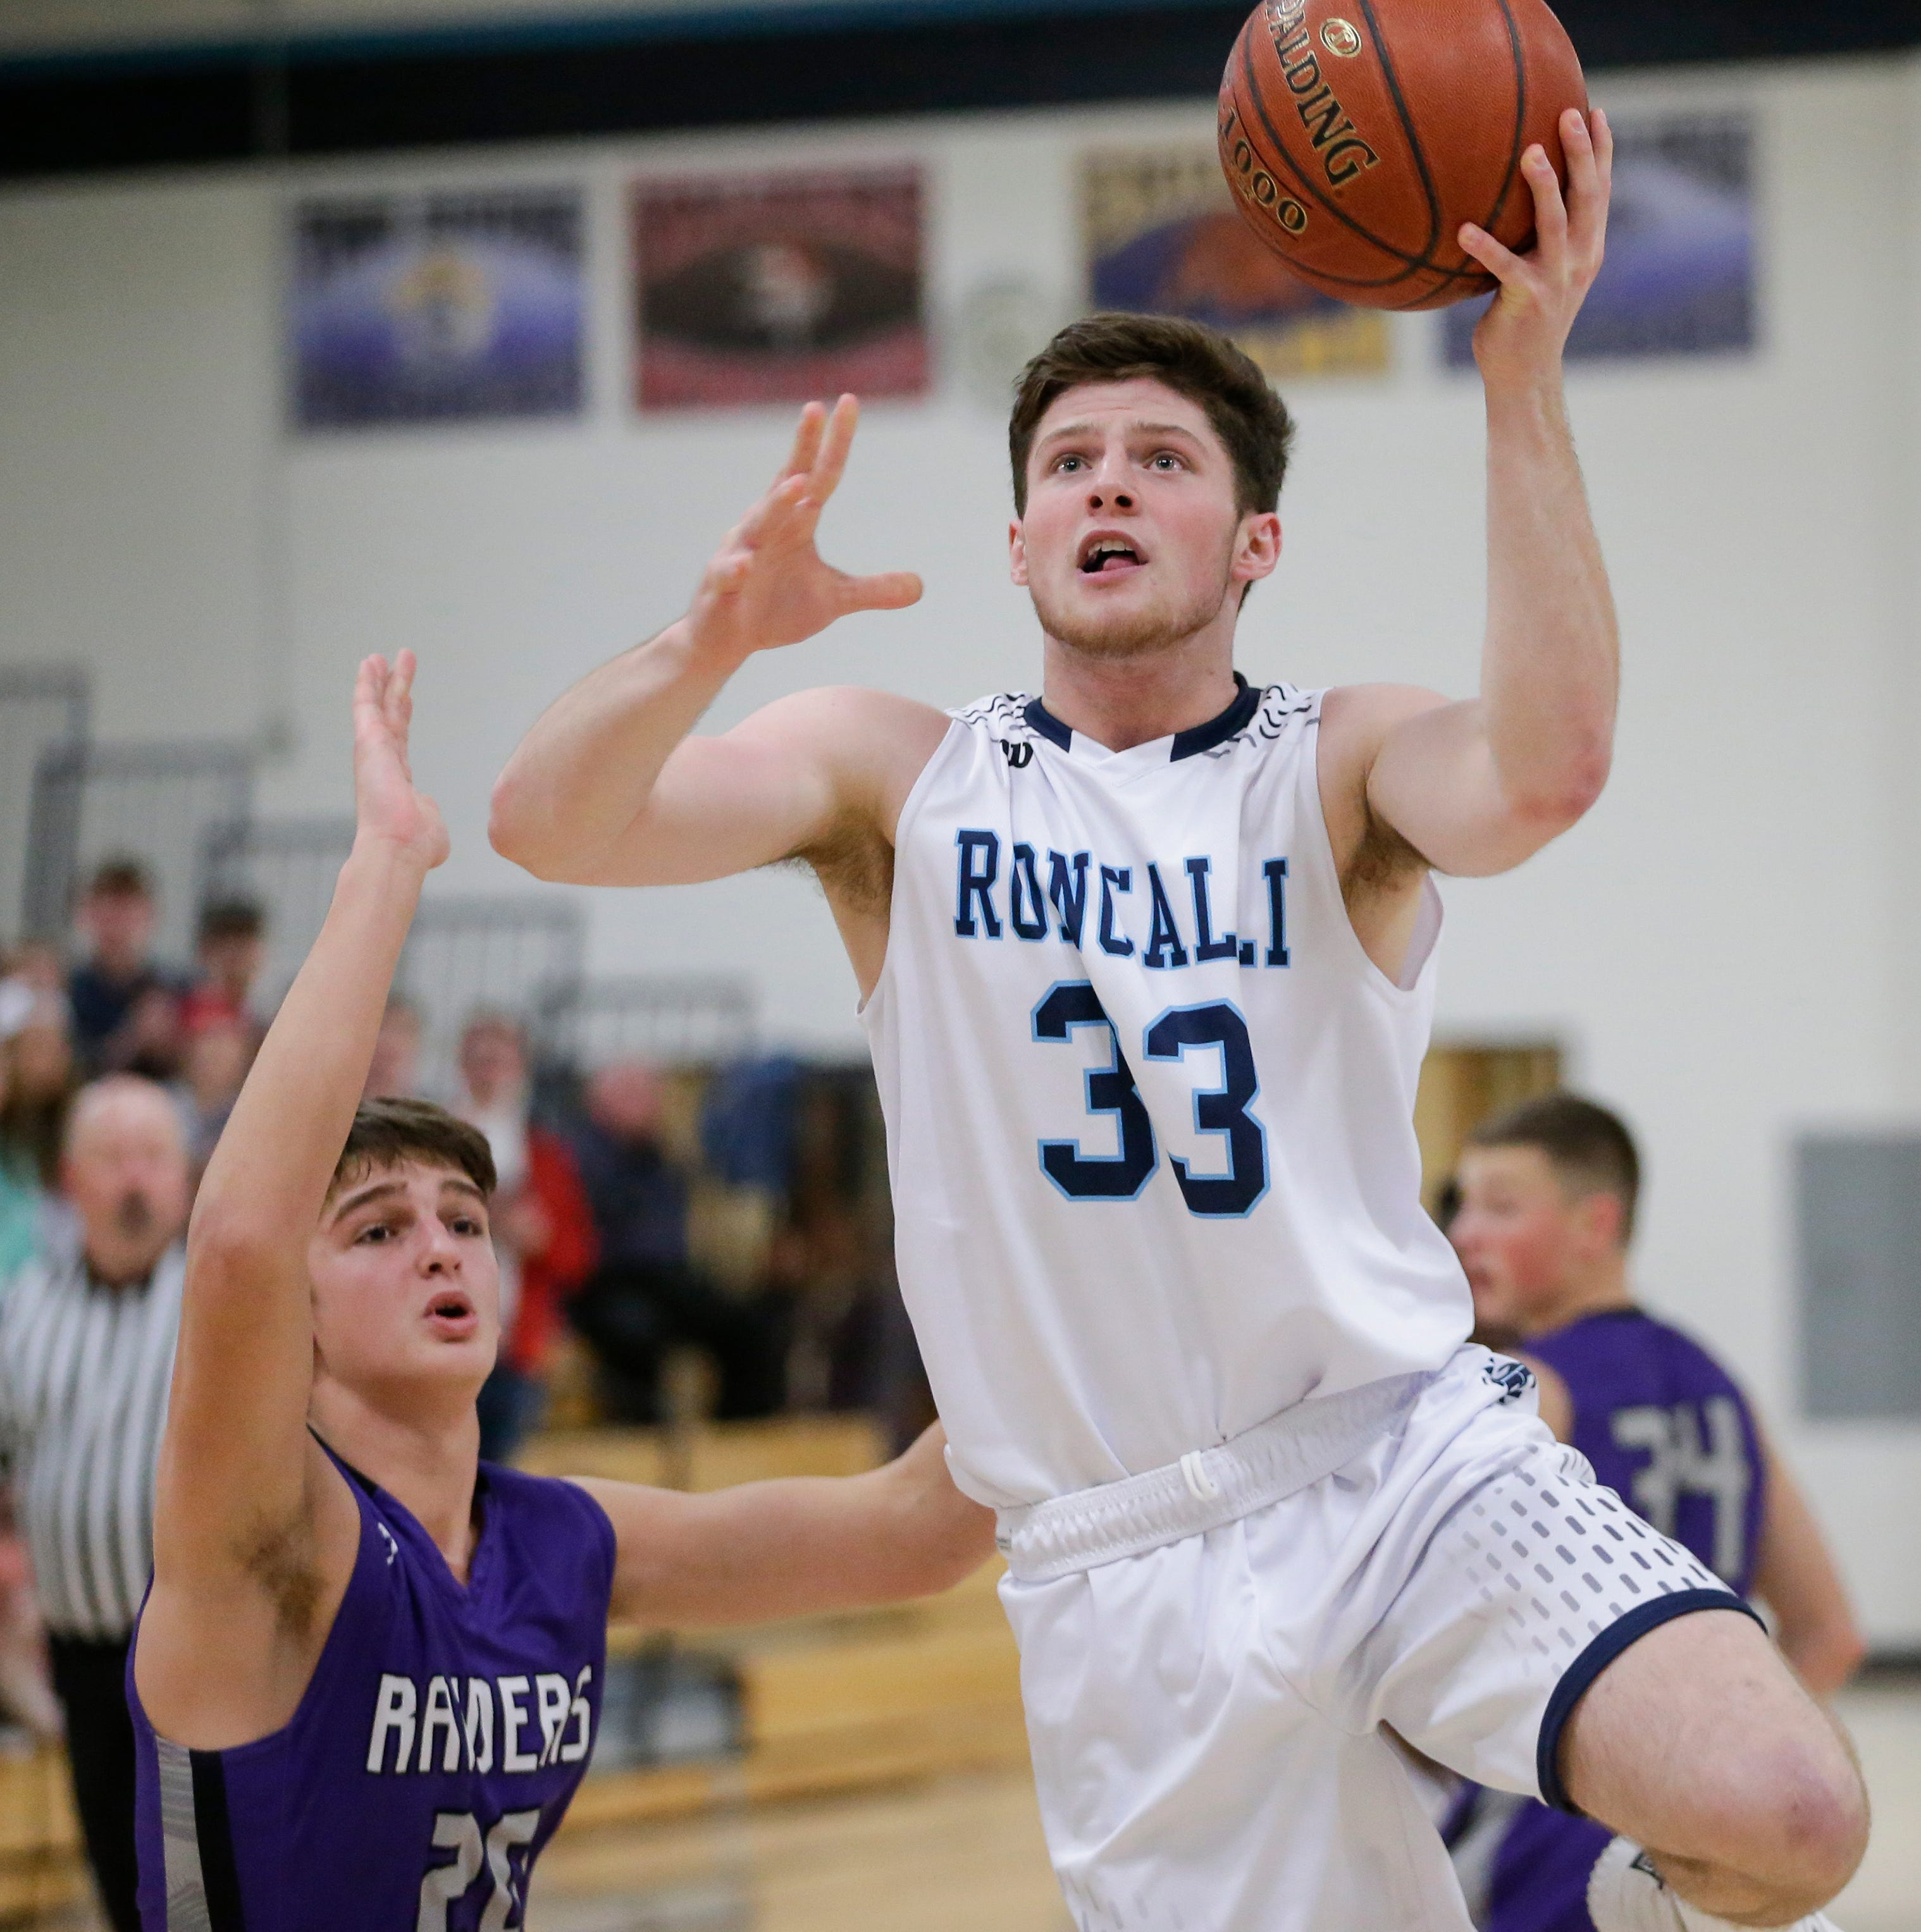 Manitowoc Lutheran's Zastrow breaks 1,000 while Roncalli looks dominant: Prep recap